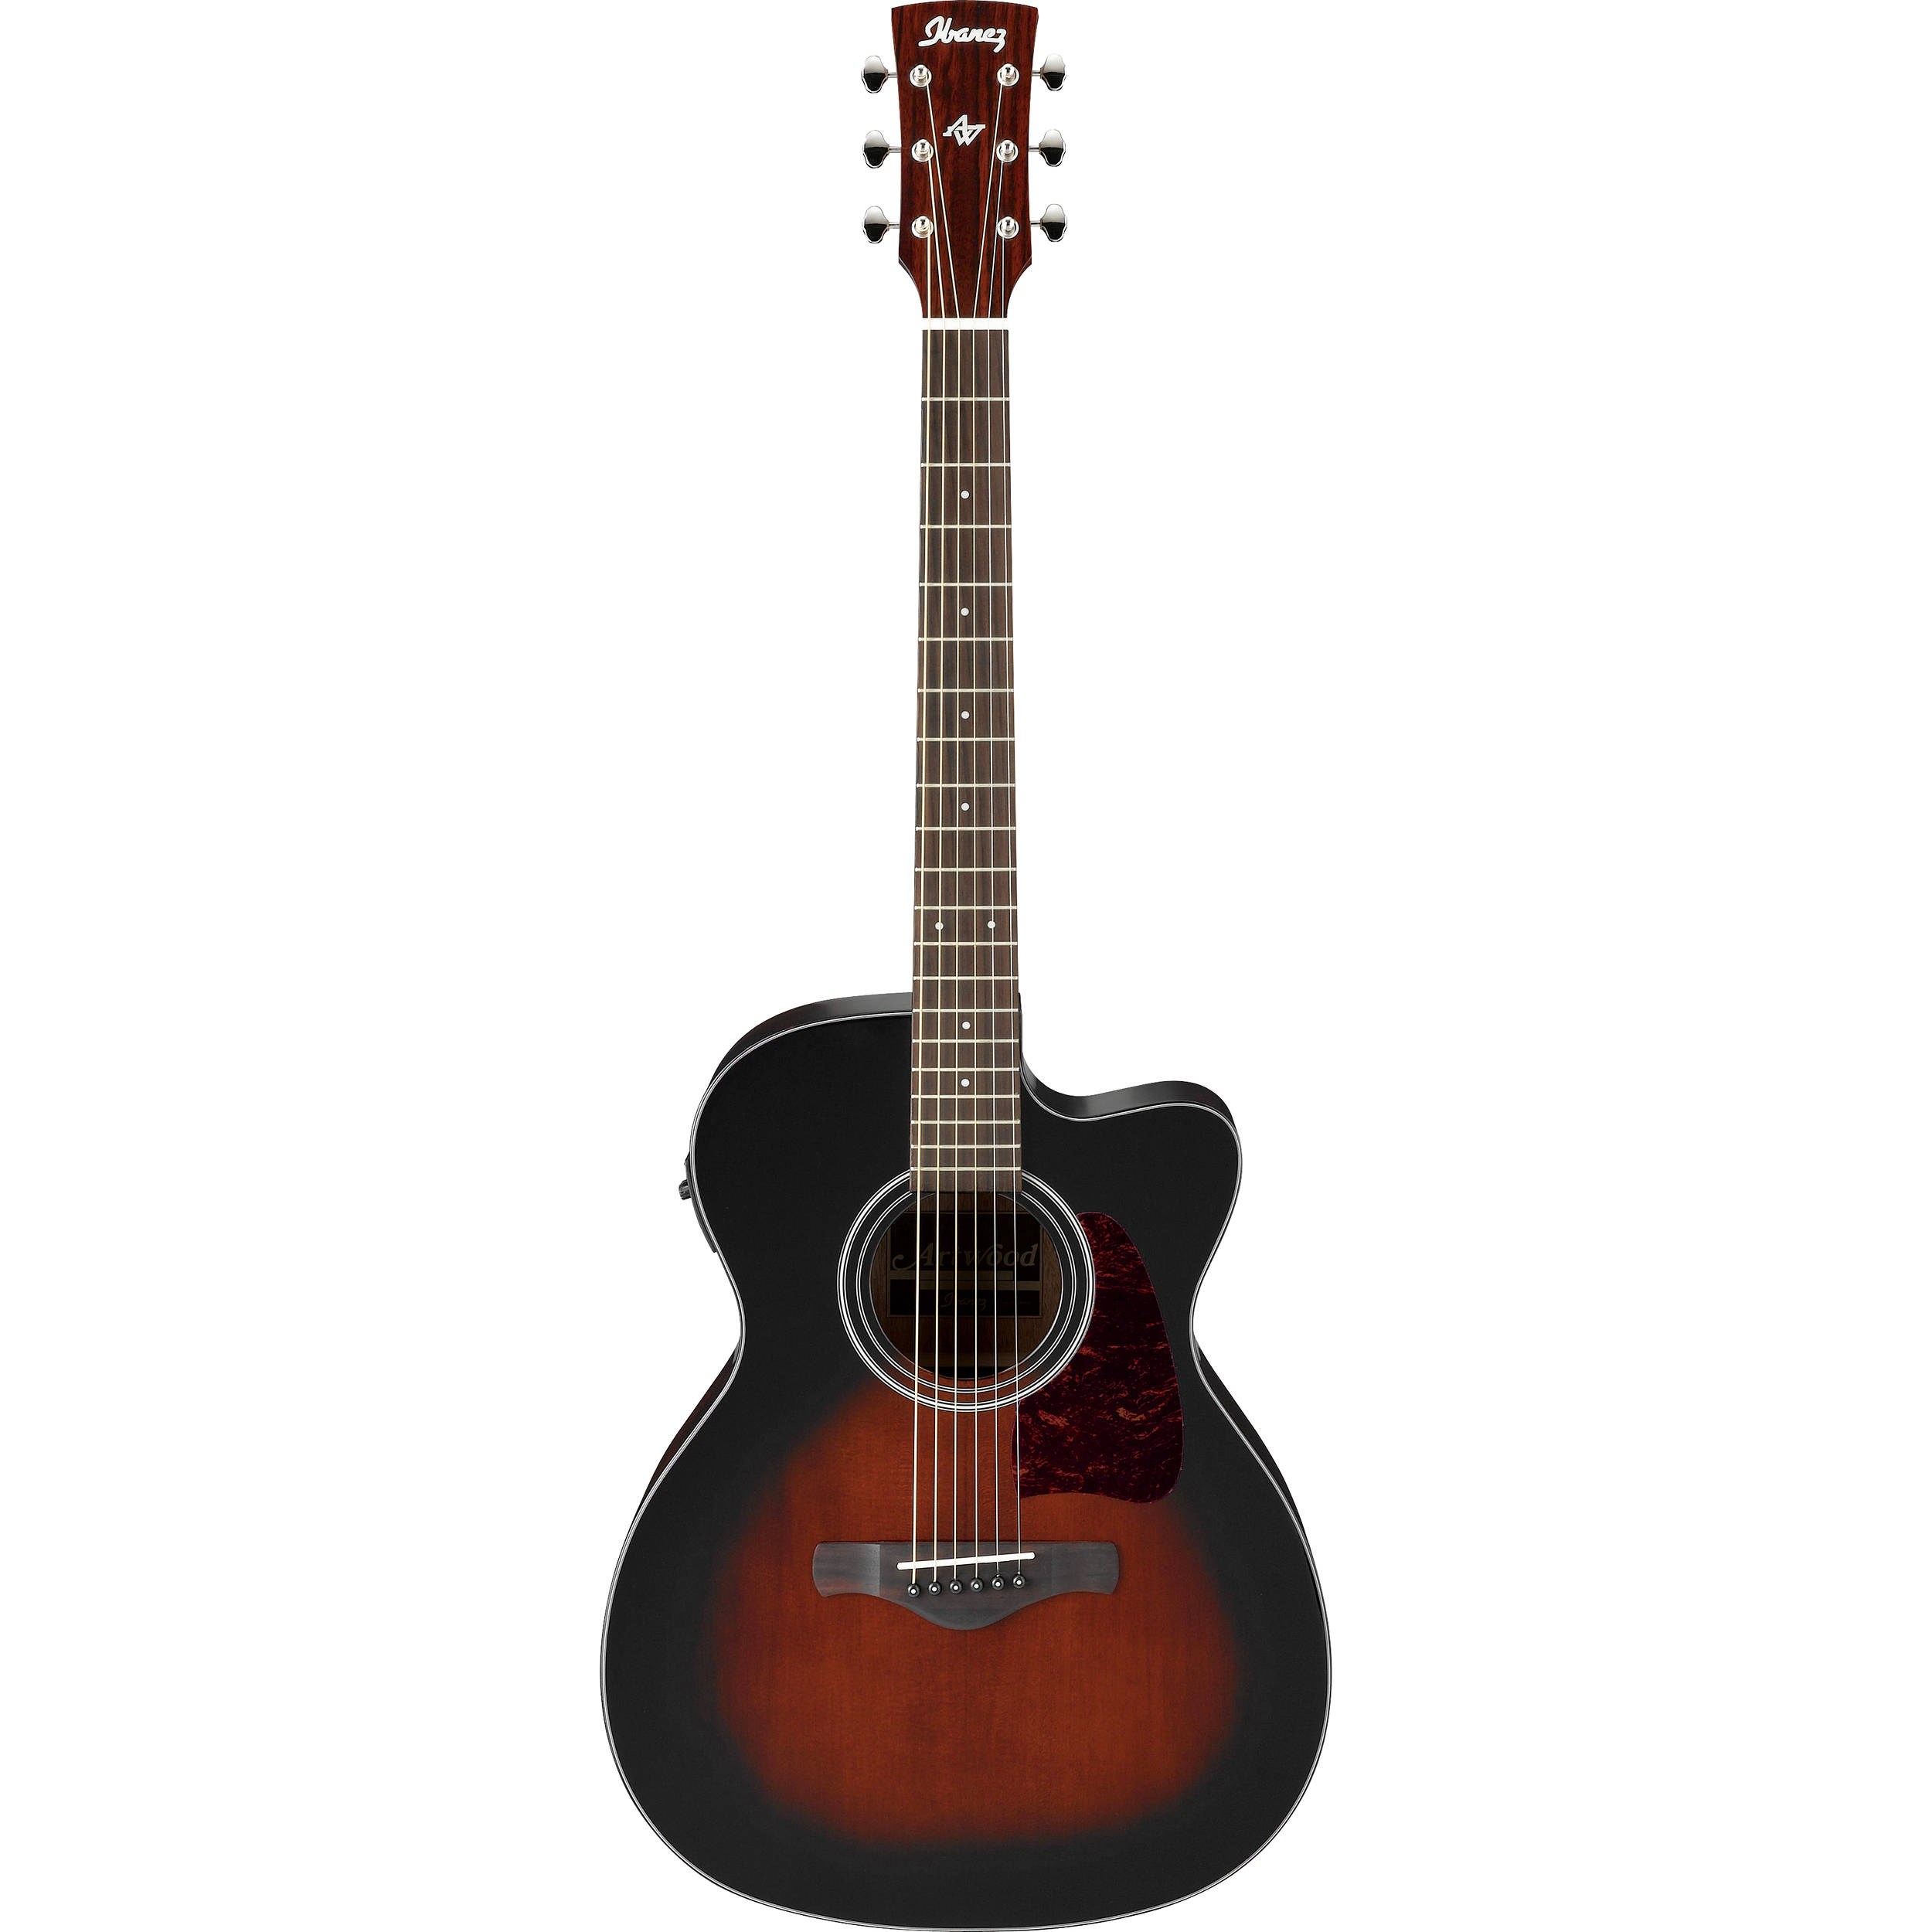 ibanez artwood series ac400ce acoustic electric guitar. Black Bedroom Furniture Sets. Home Design Ideas